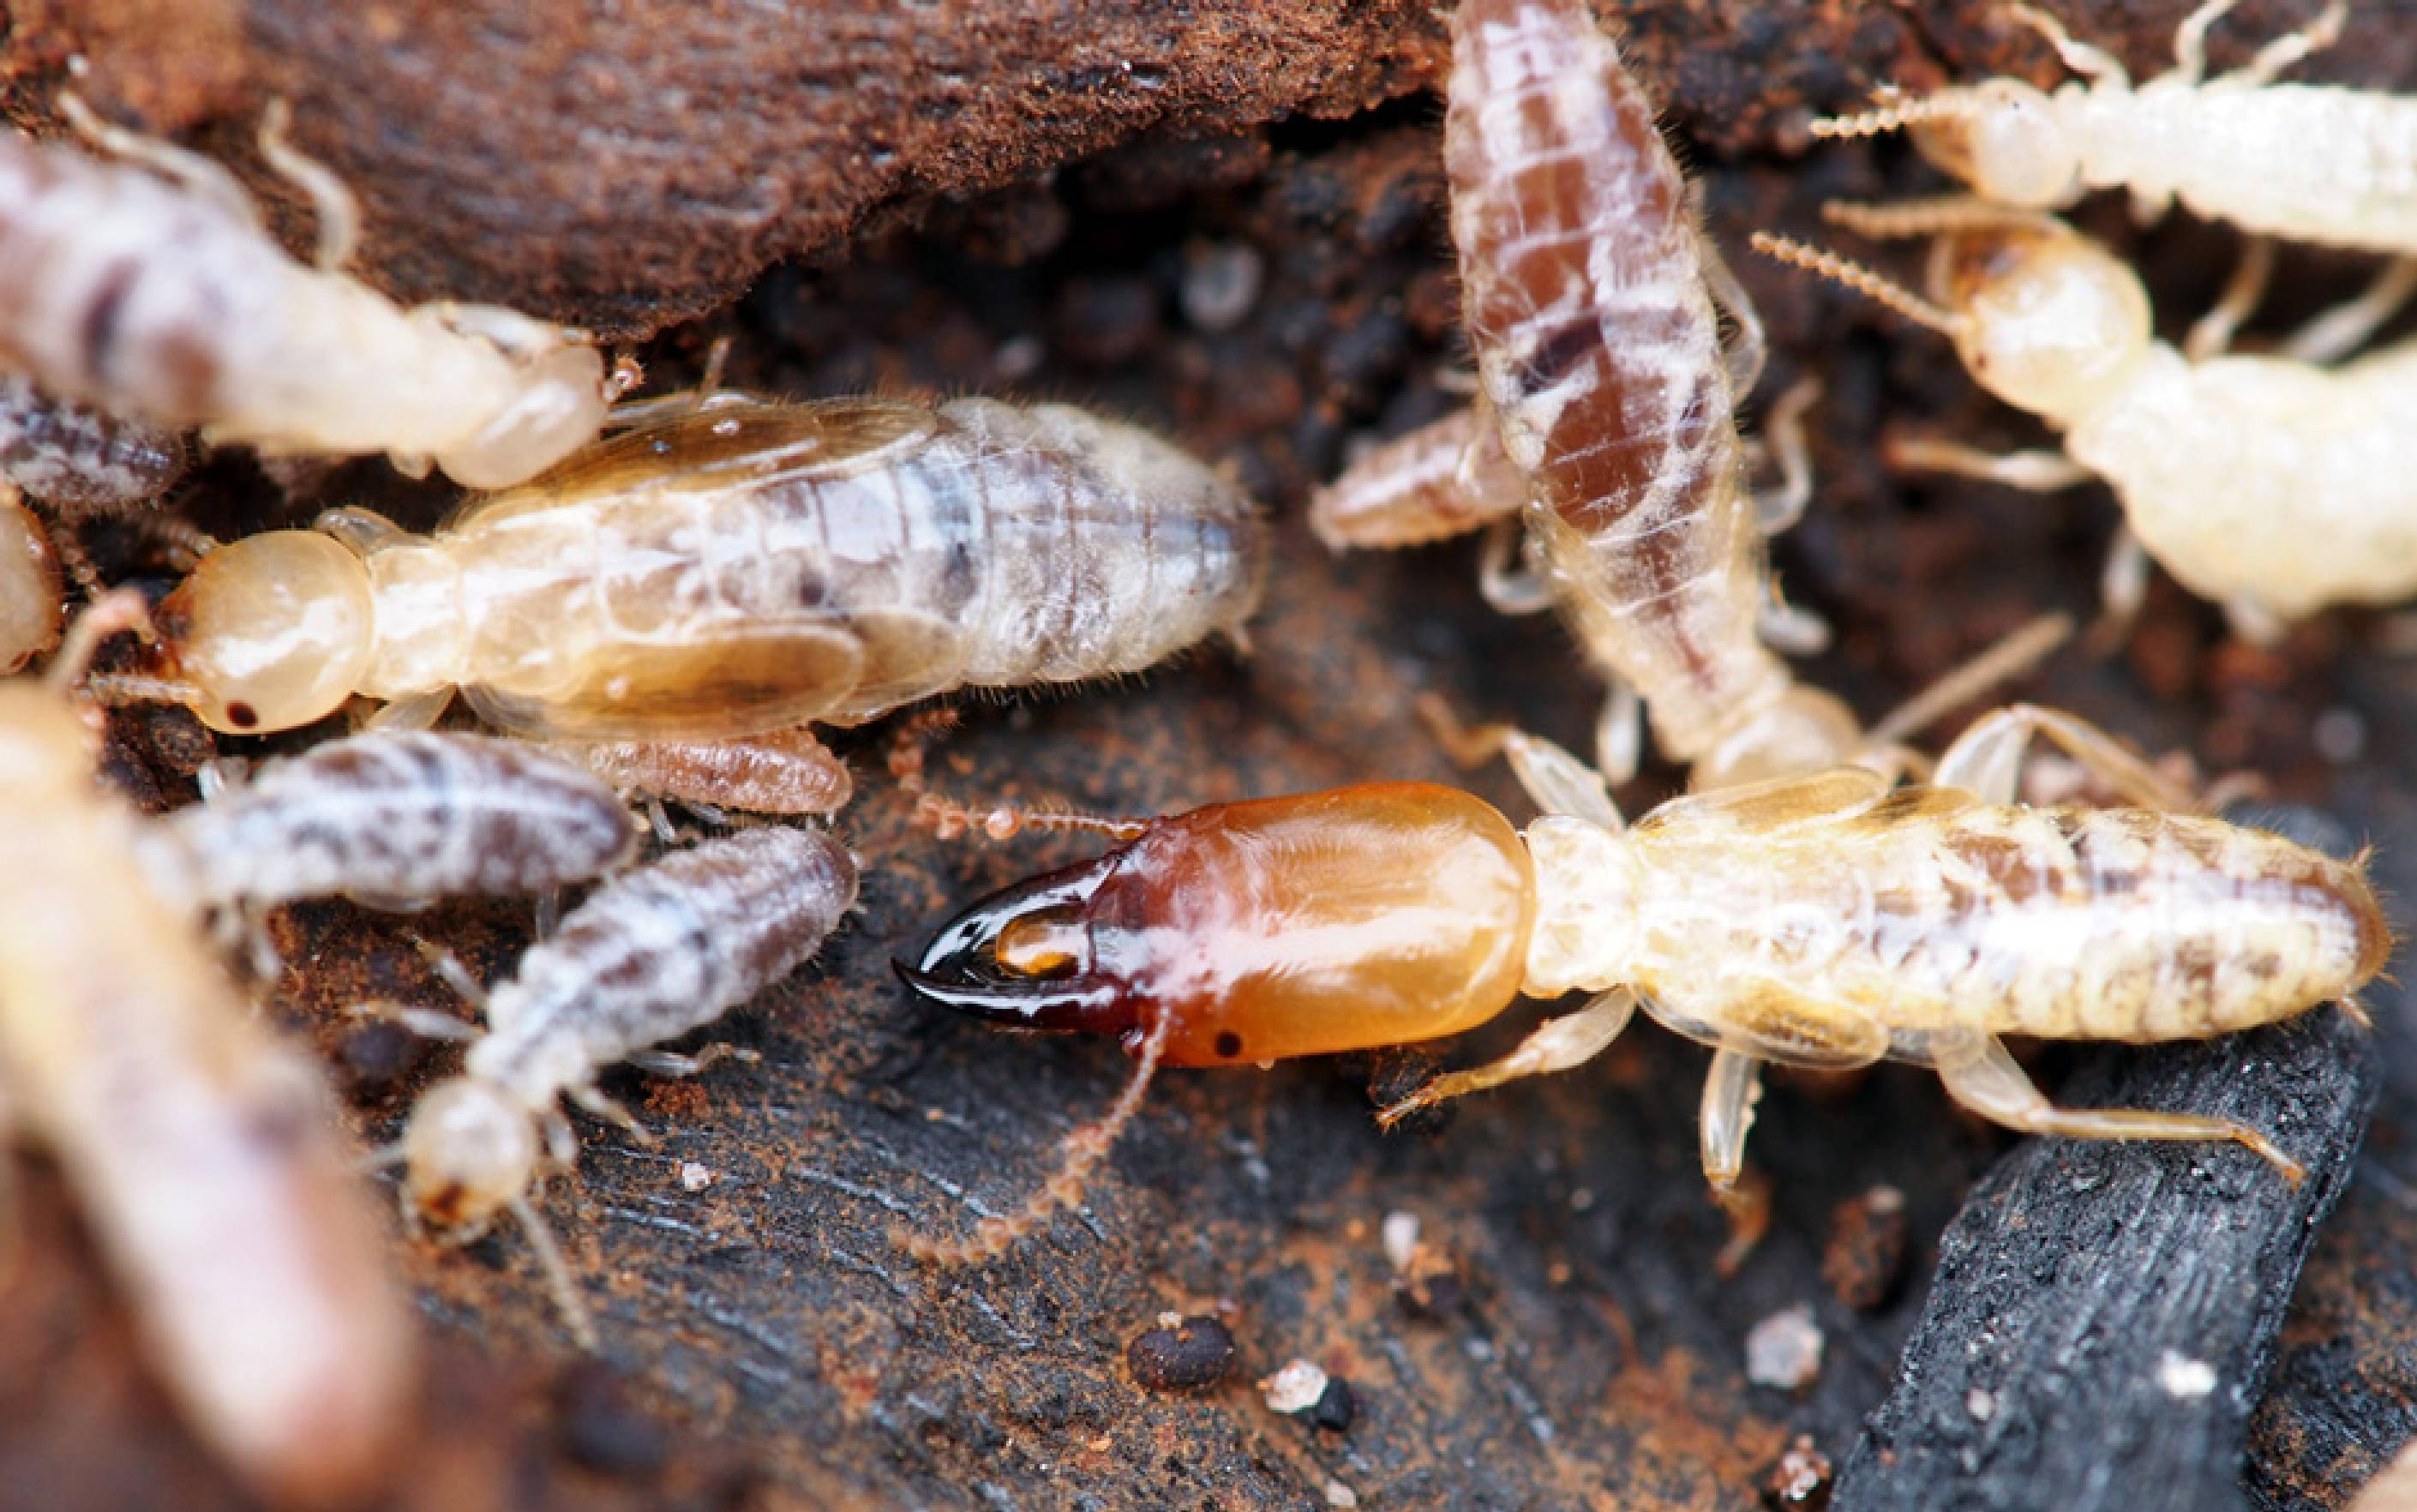 What Are Subterranean Termites